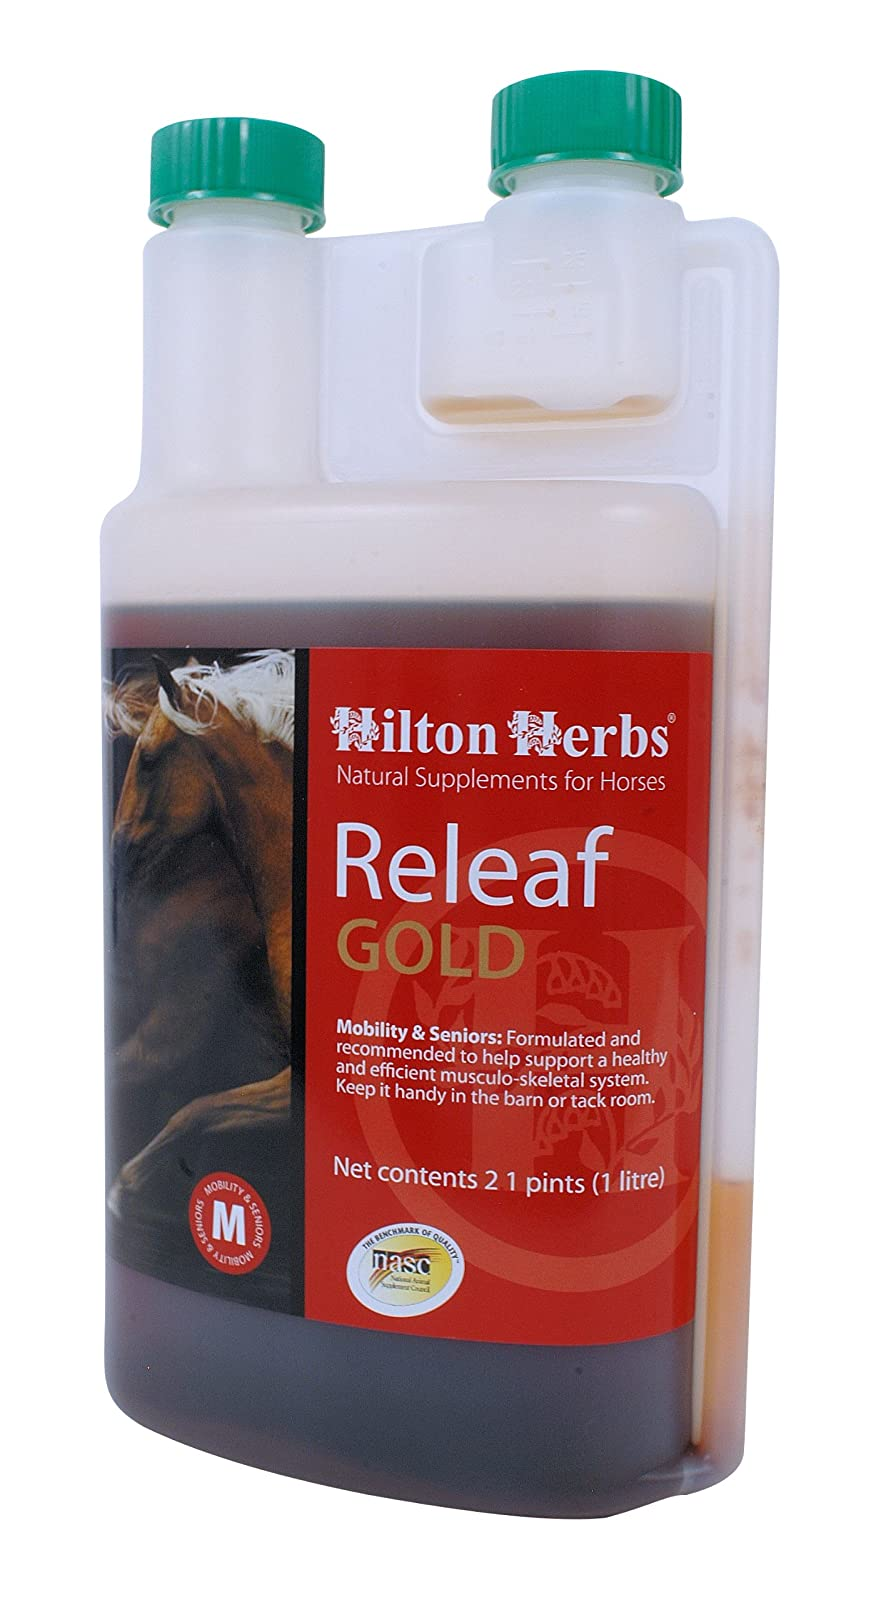 Hilton Herbs Releaf Gold Herbal Mobility SupplementHorses 71144 - 1